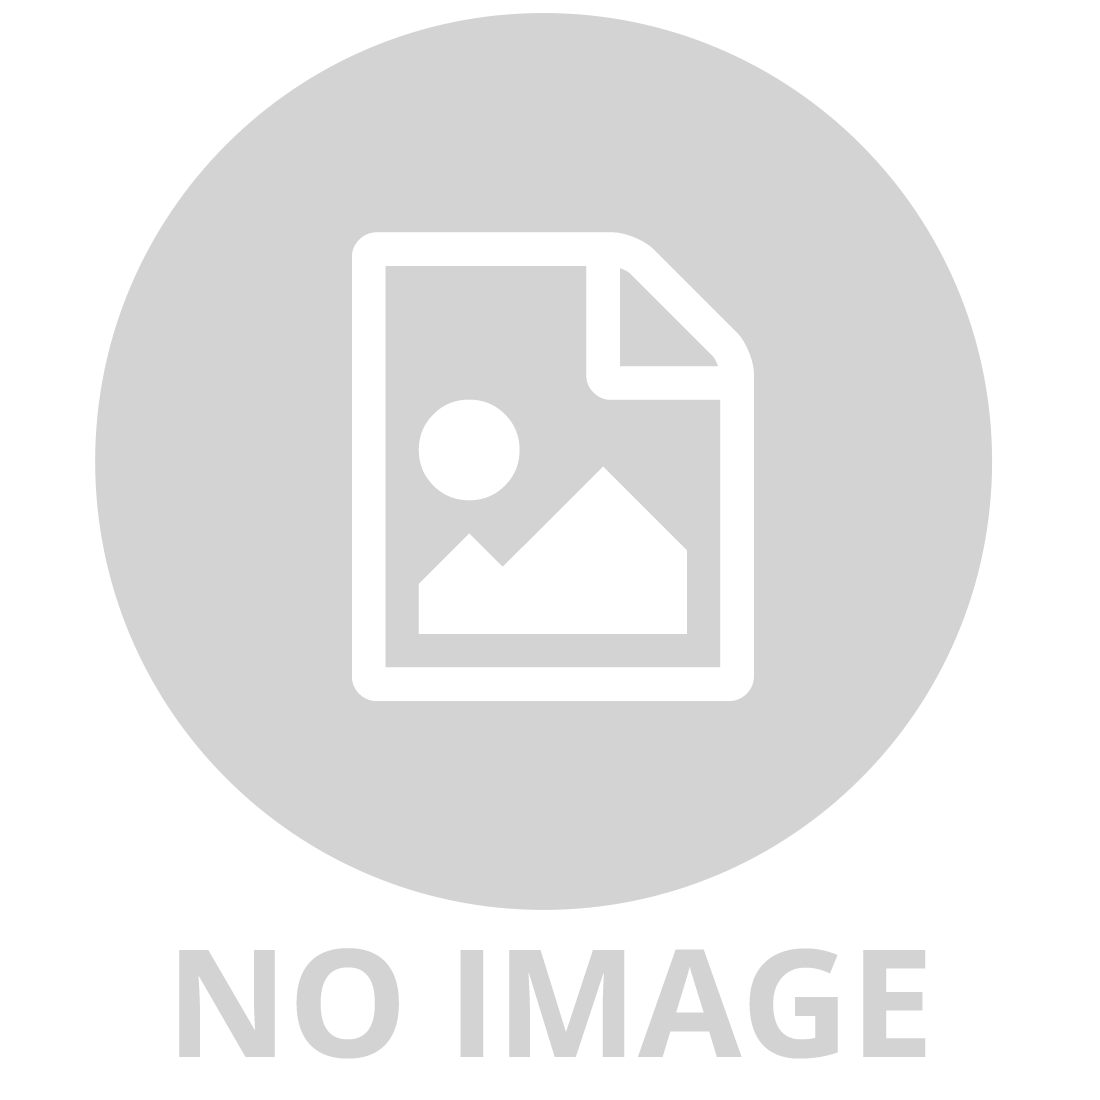 WASGIJ CHRISTMAS PUZZLE - SANTA'S UNEXPECTED DELIVERY 1000 PIECE JIGSAW PUZZLE